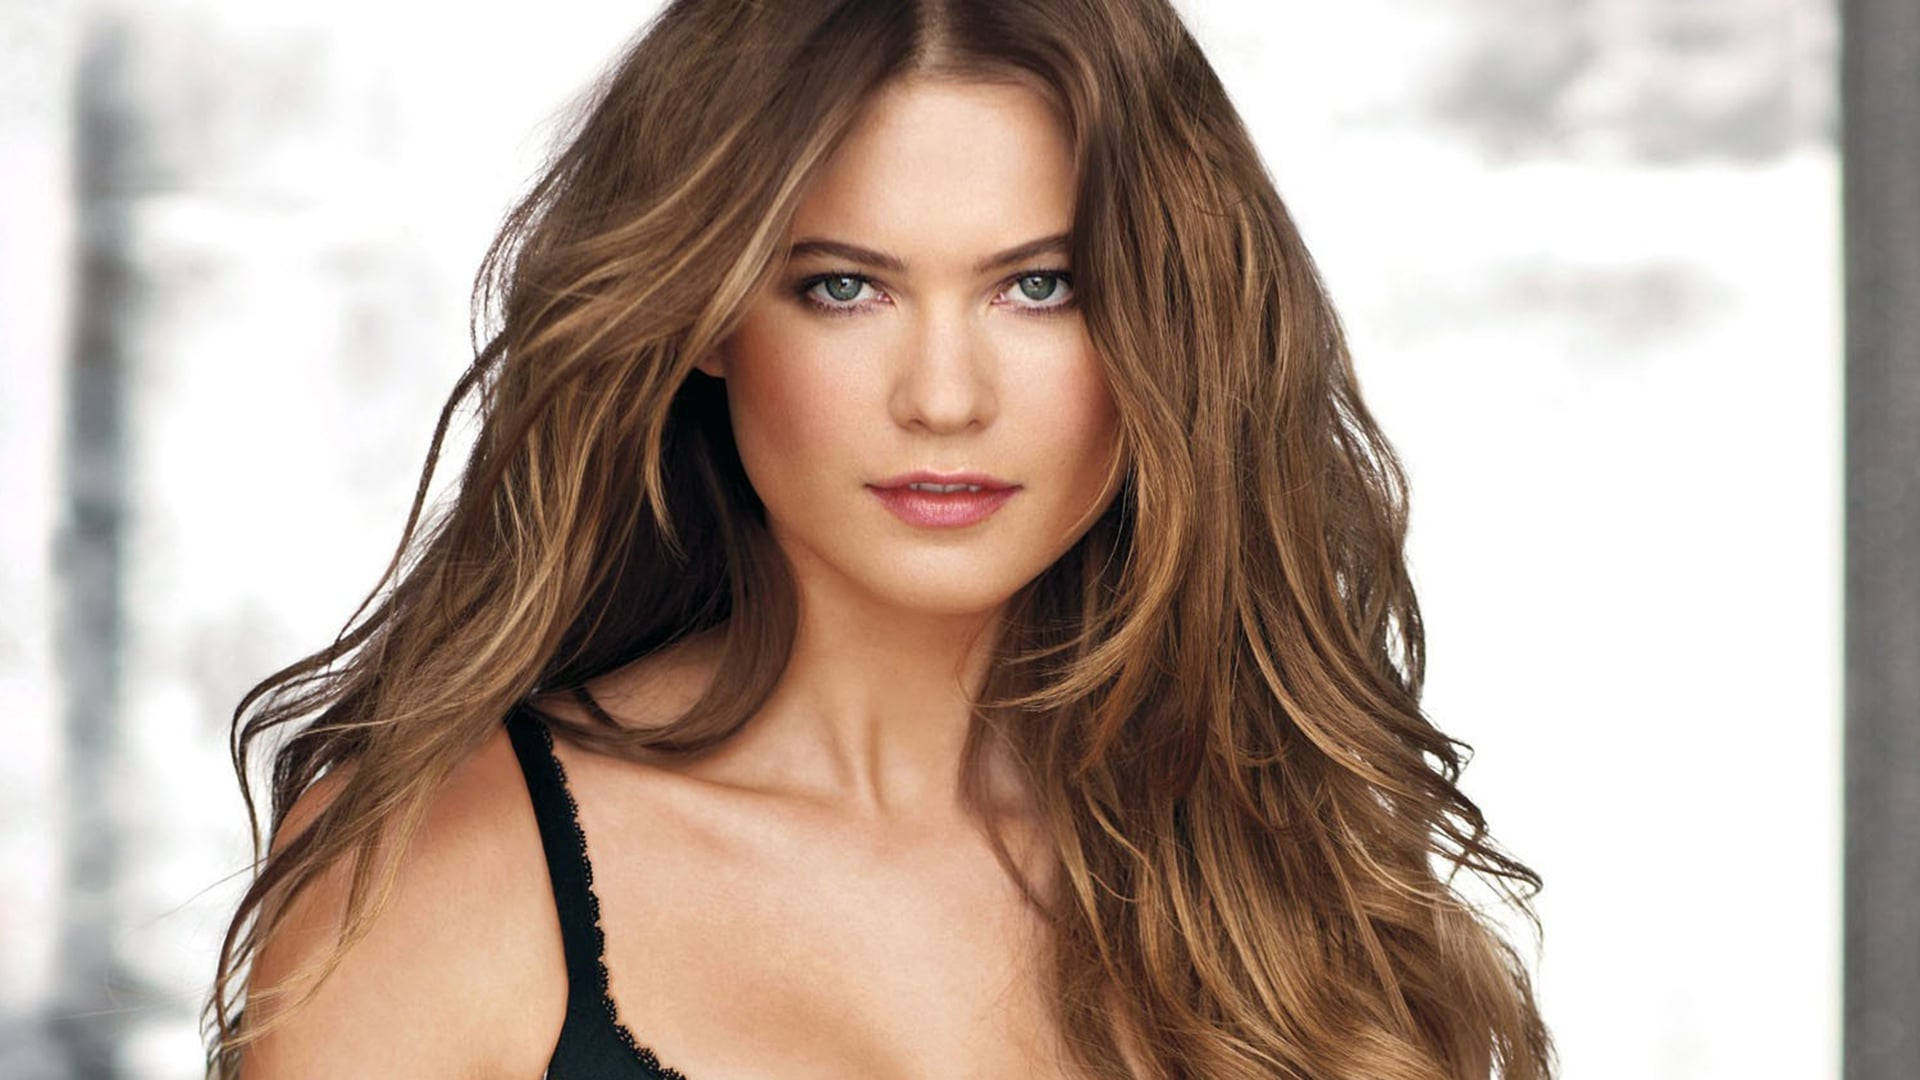 All Anime In One Wallpaper 21 Behati Prinsloo Hd Wallpapers Free Download